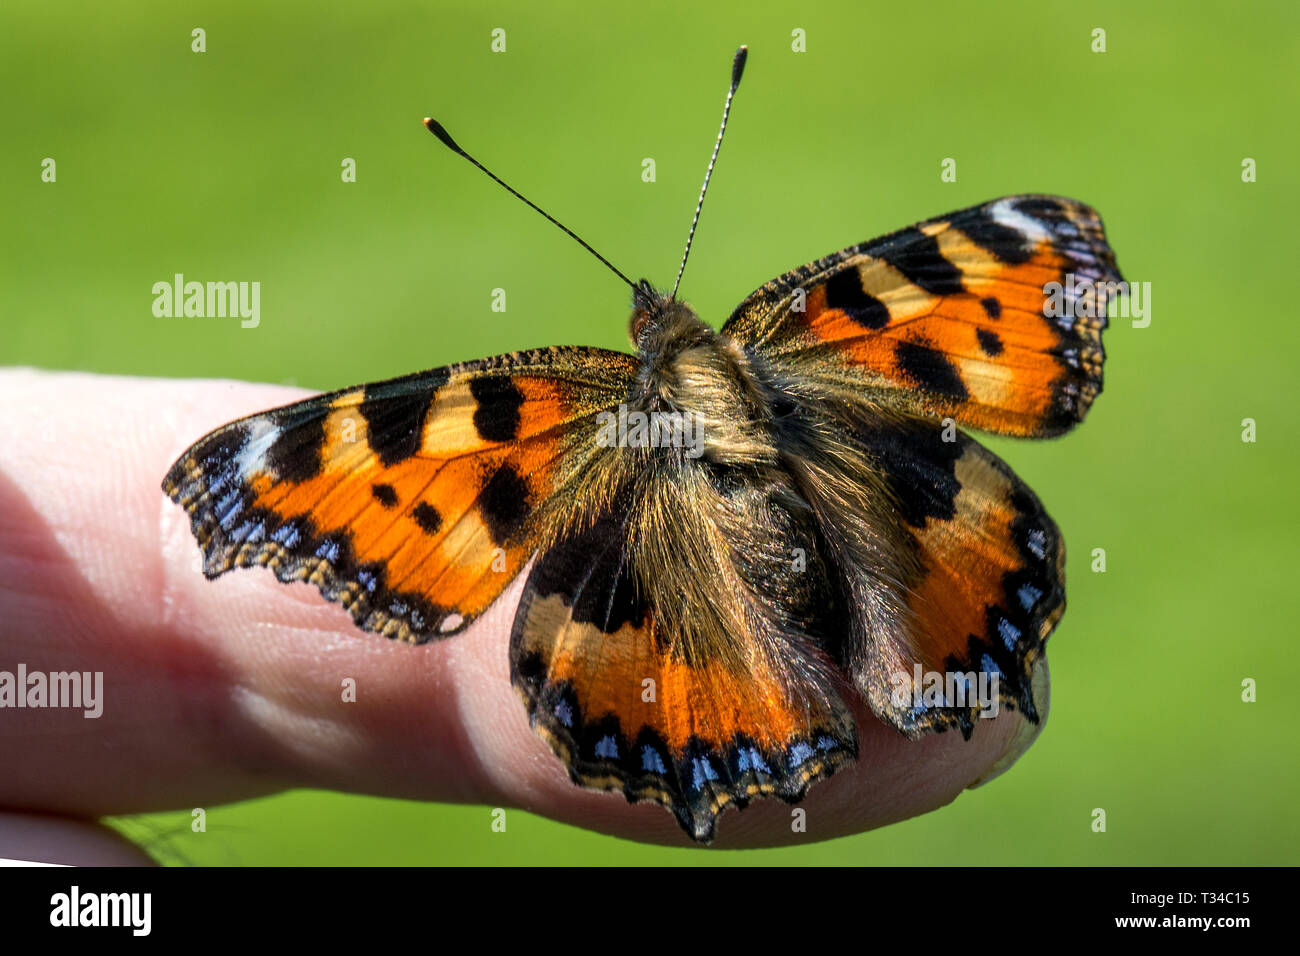 A small tortoiseshell butterfly freshly emerged from it's chrysalis, stretching  it's wings to dry them before first flight. Release available. - Stock Image